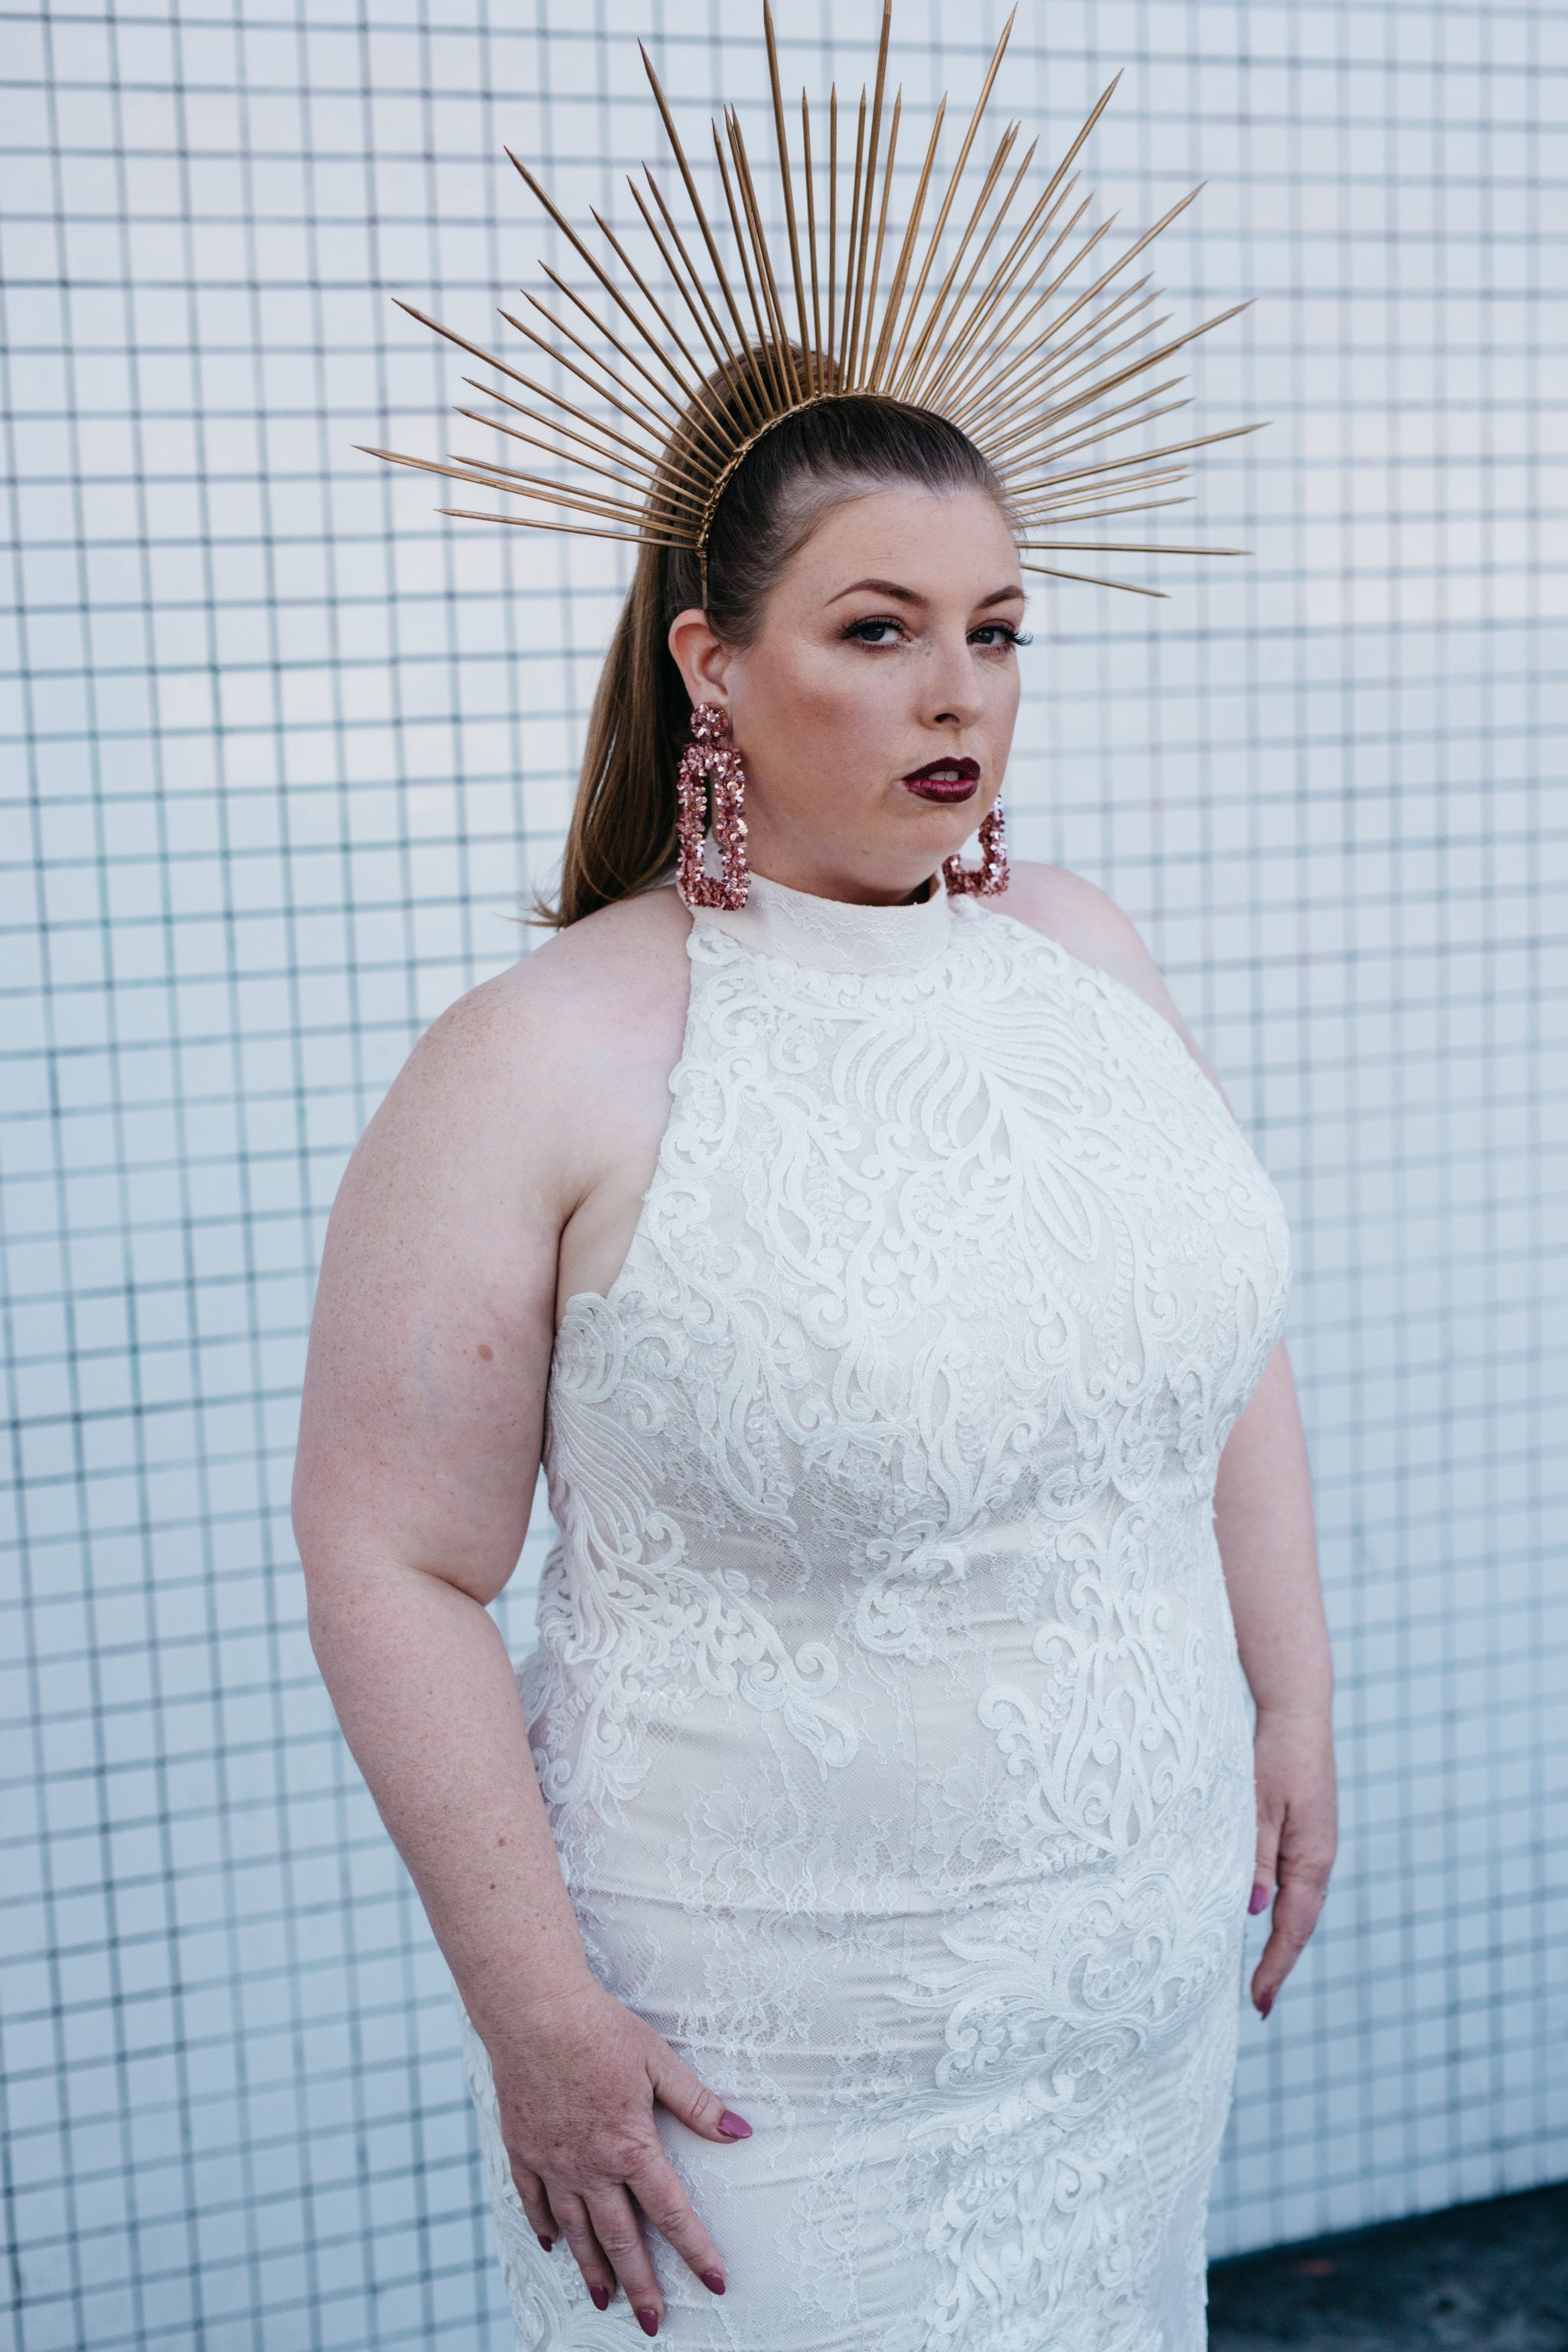 A woman with dark makeup and a radiant crown wearing a white lace halter plus size wedding dress from Lace and Liberty stands in front of a white tile wall